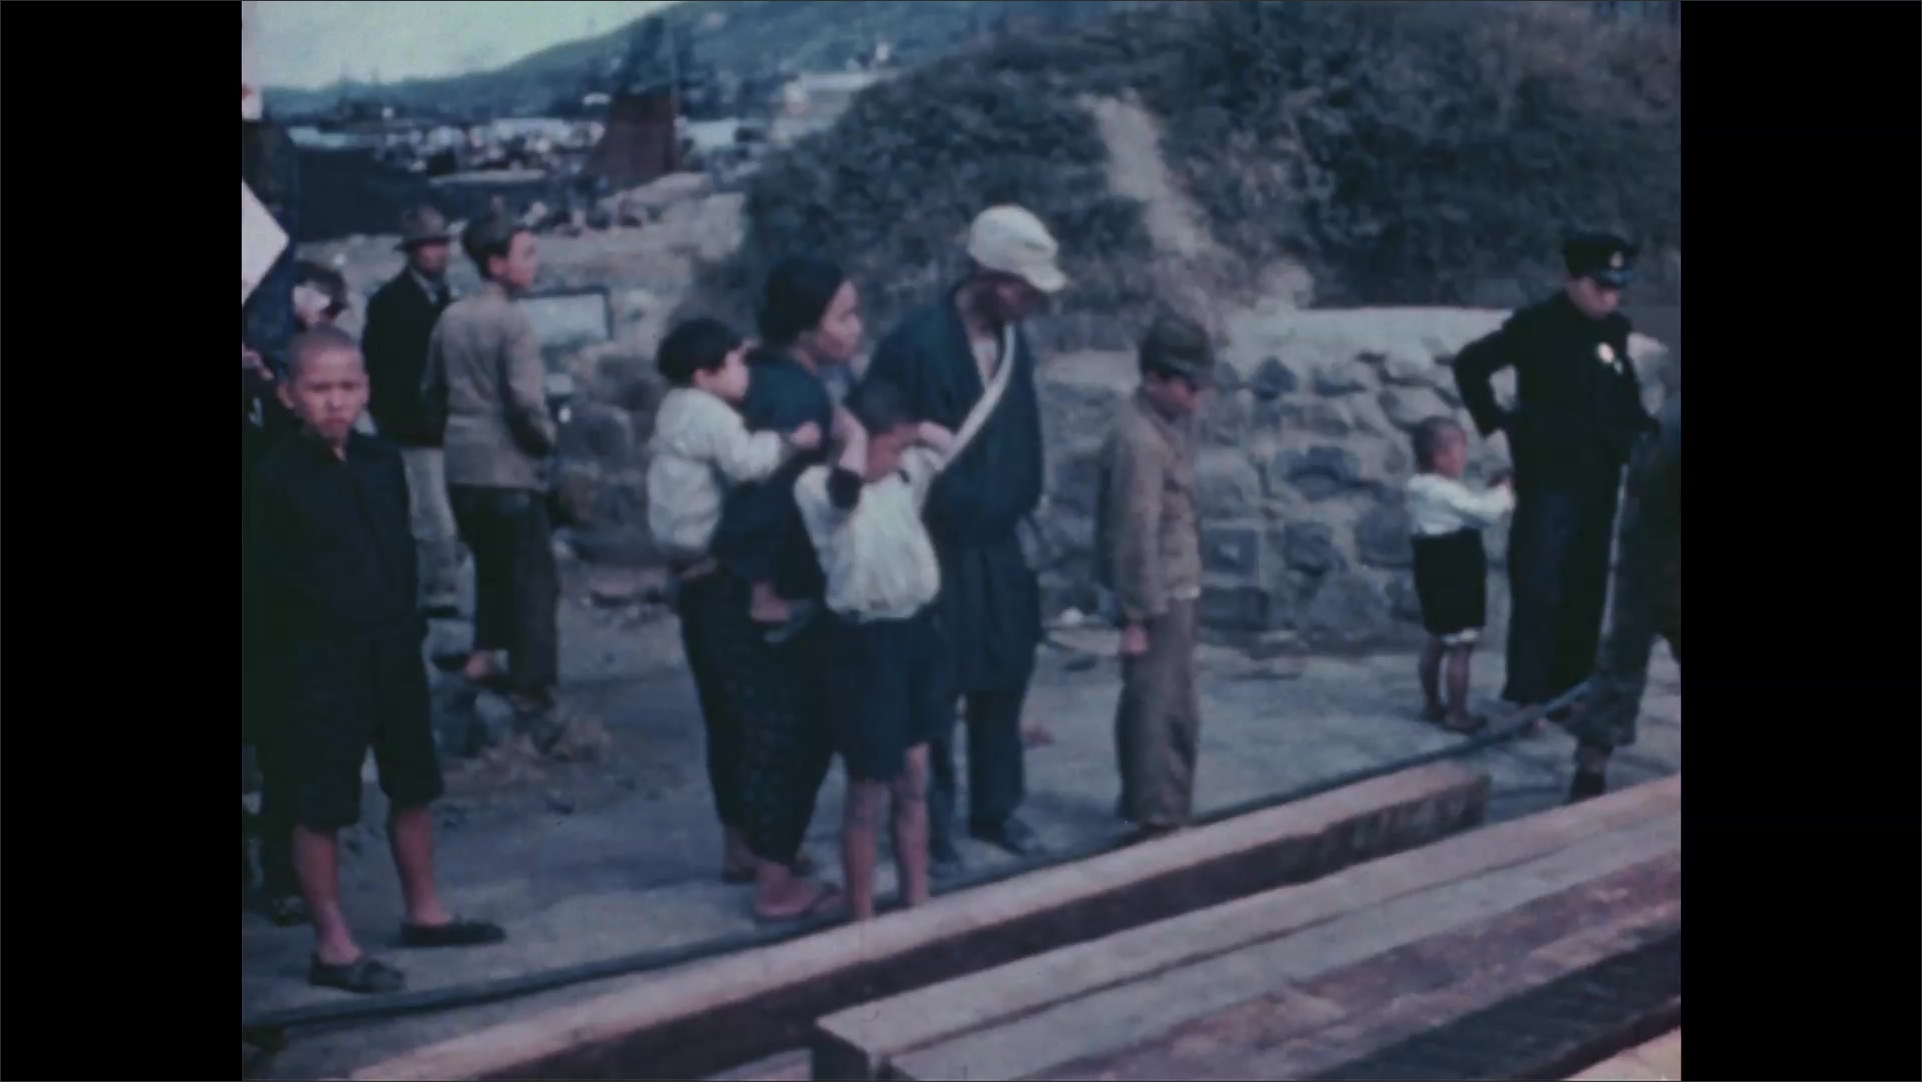 1940s Nagasaki: Neighborhood, soldiers hold steel clamp on wooden beams, children, families, police officers watch. Water, partially built bridge, soldier bangs mallet.